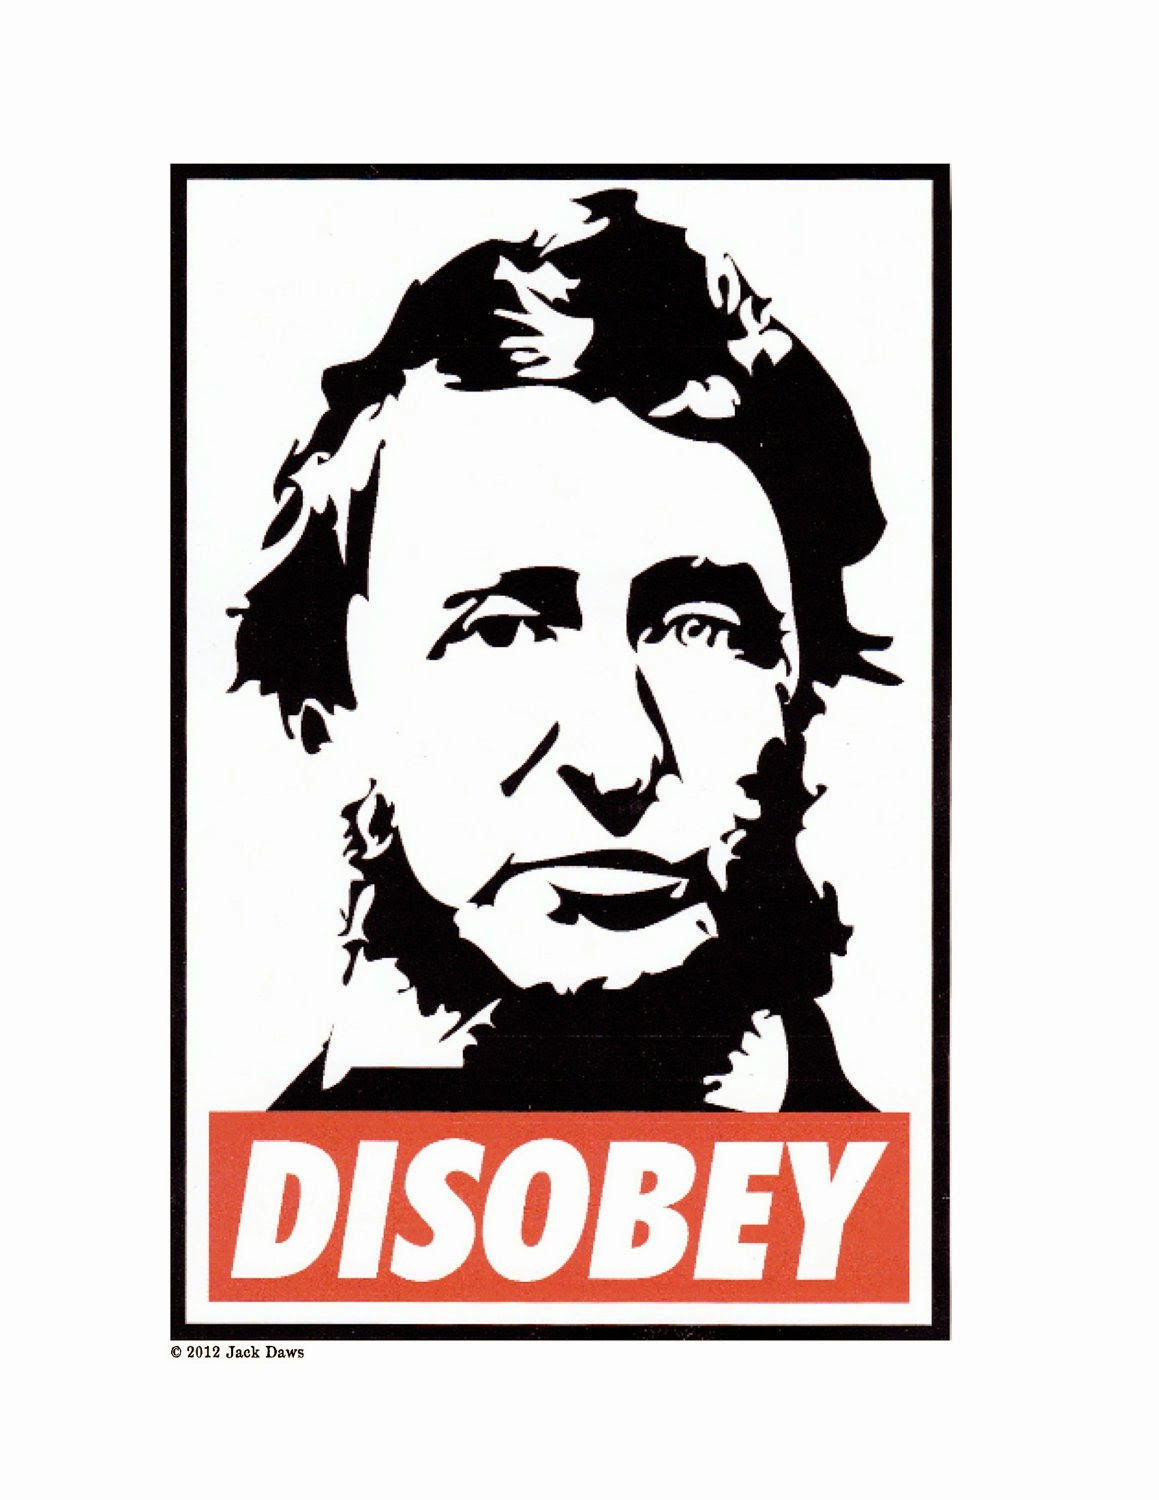 jesse s blog badass quotes from henry david thoreau s resistance henry david thoreau 1817 1862